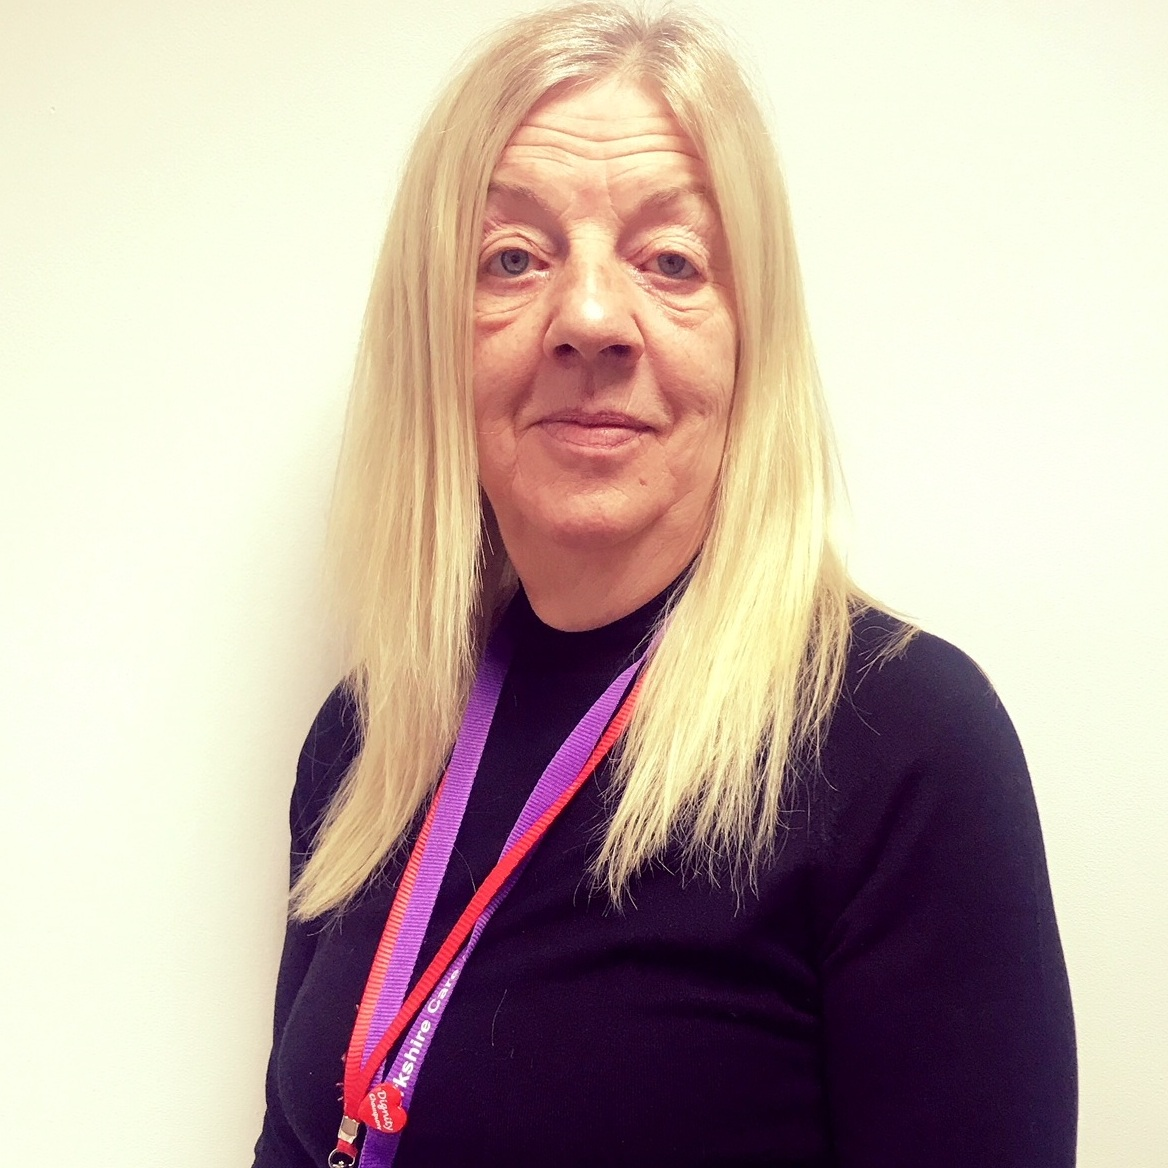 Marjorie Florence - Team LeaderMy name is Marjorie but my colleagues call me Madge. I have worked for Yorkshire Care At Home since June 2018. I have just proudly received my promotion to team leader and I am looking forward to inspiring and leading our hardworking team.